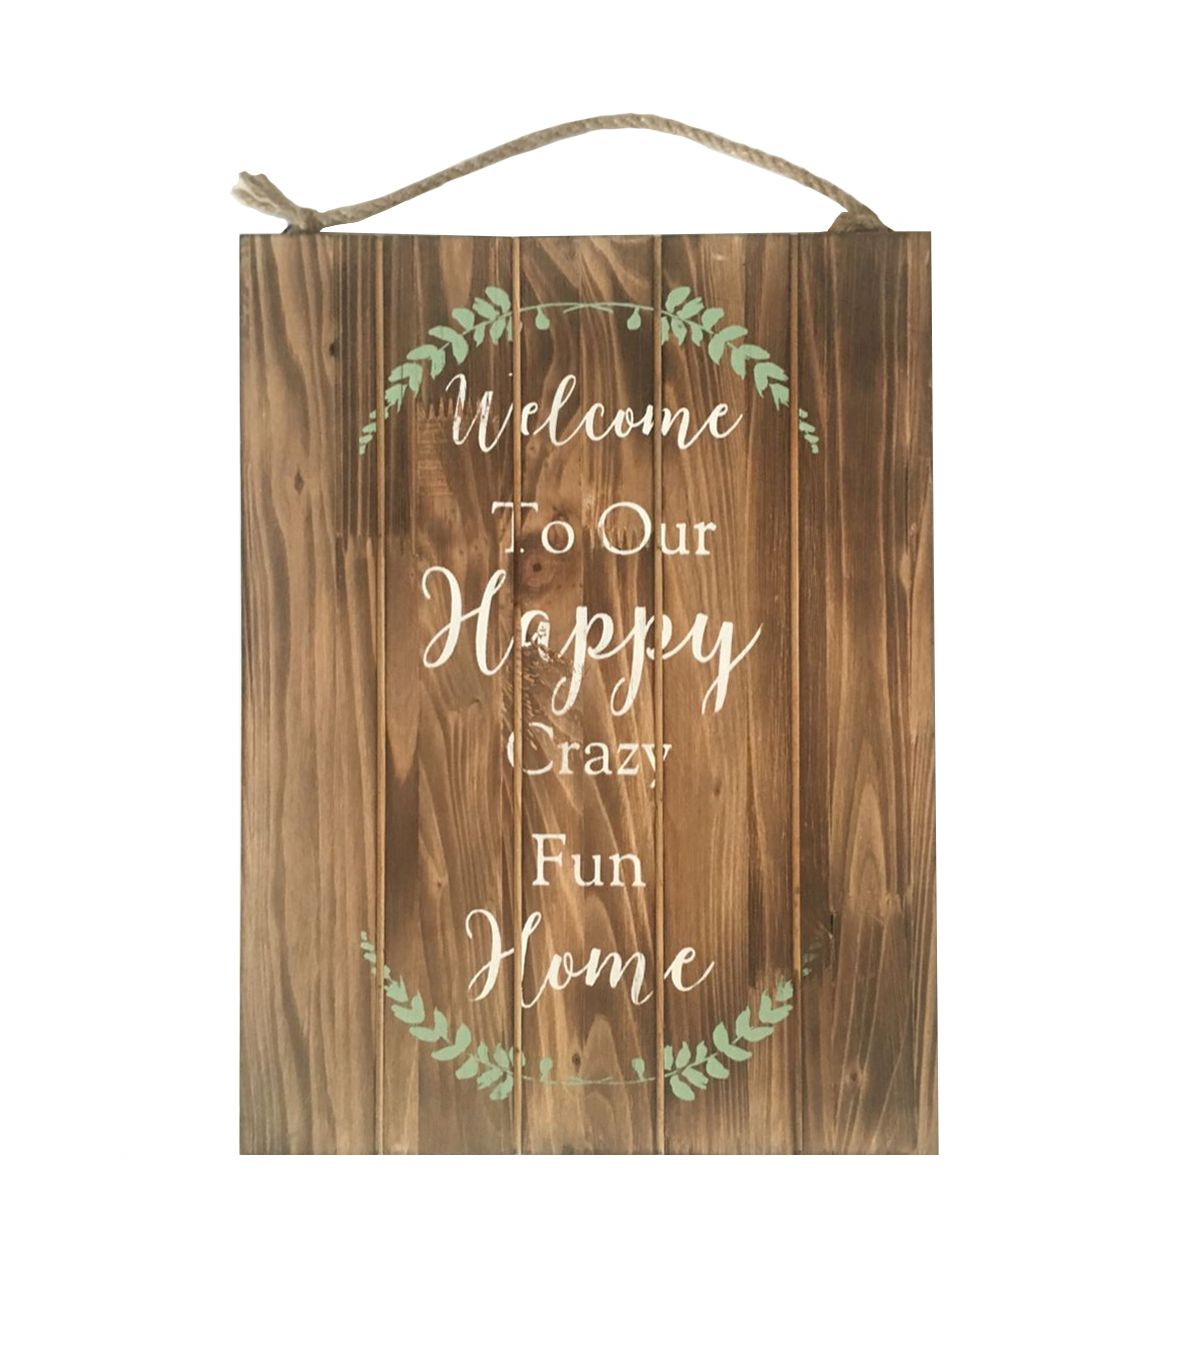 Wild blooms wood wall decor welcome to our happy crazy fun home